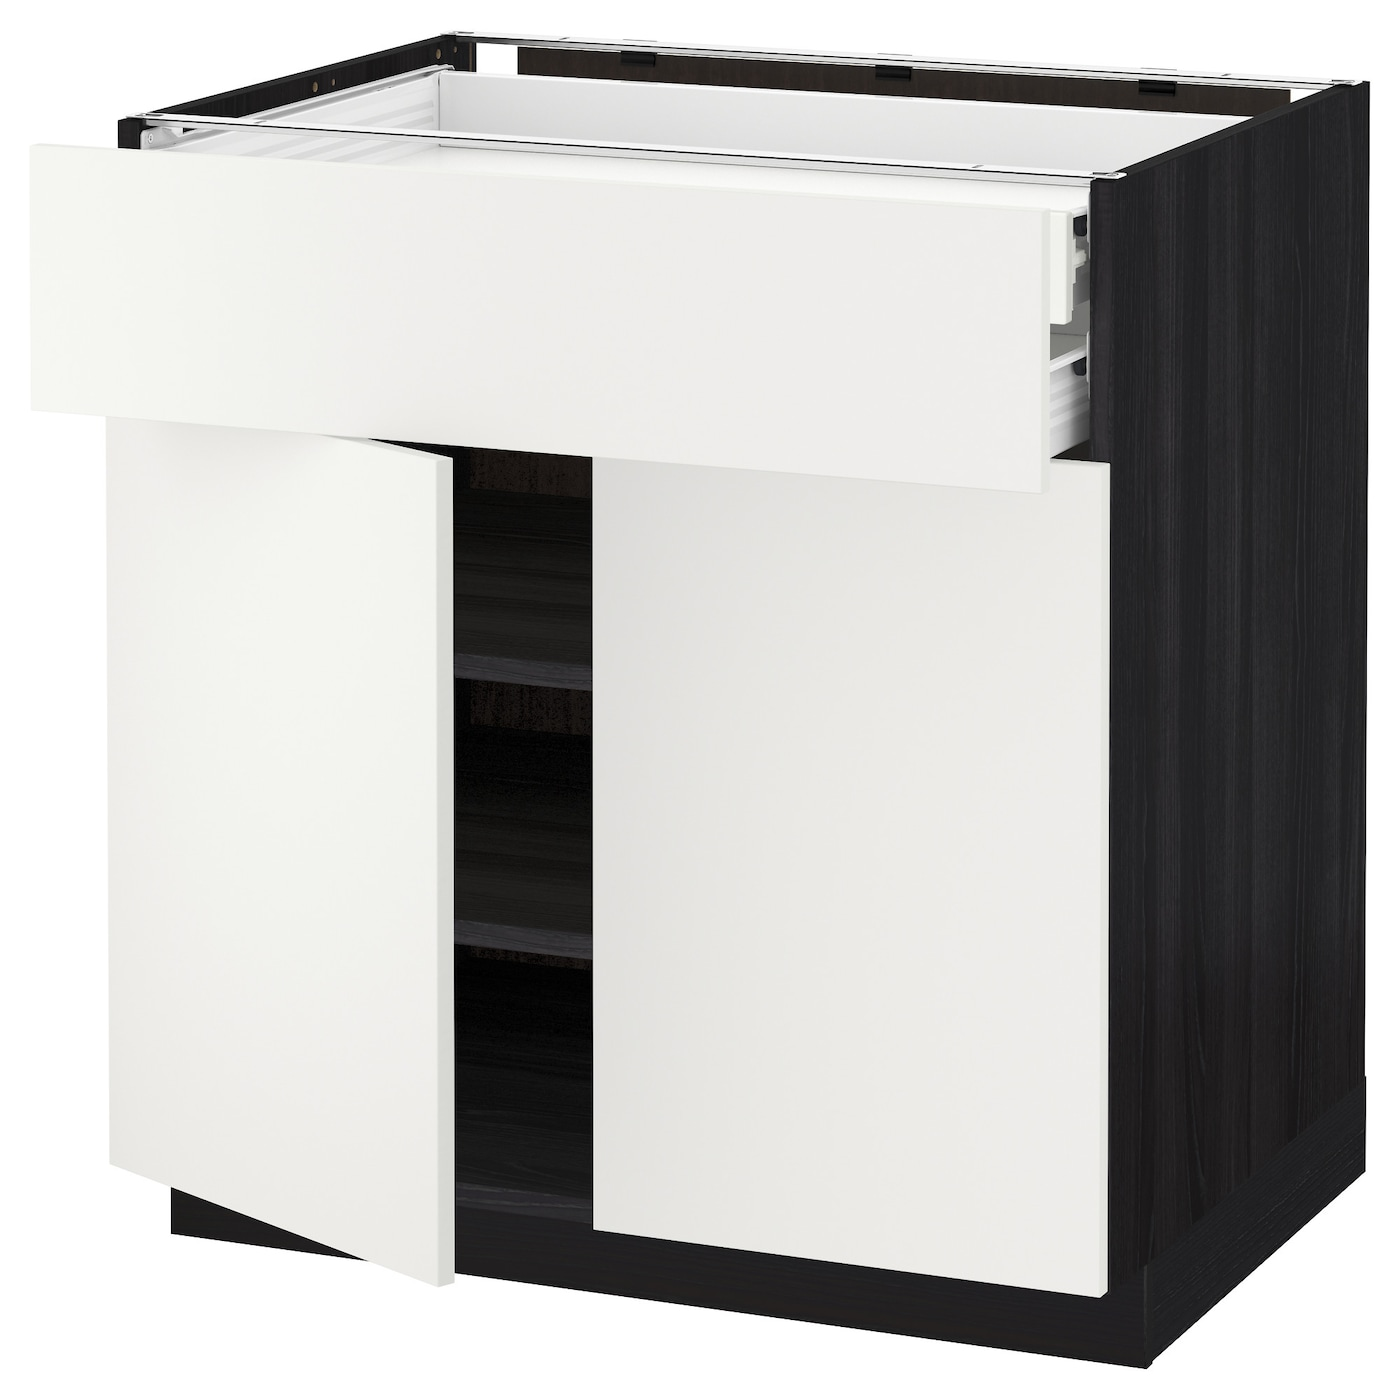 IKEA METOD/FÖRVARA base cabinet w 2 doors/2 drawers Sturdy frame construction, 18 mm thick.